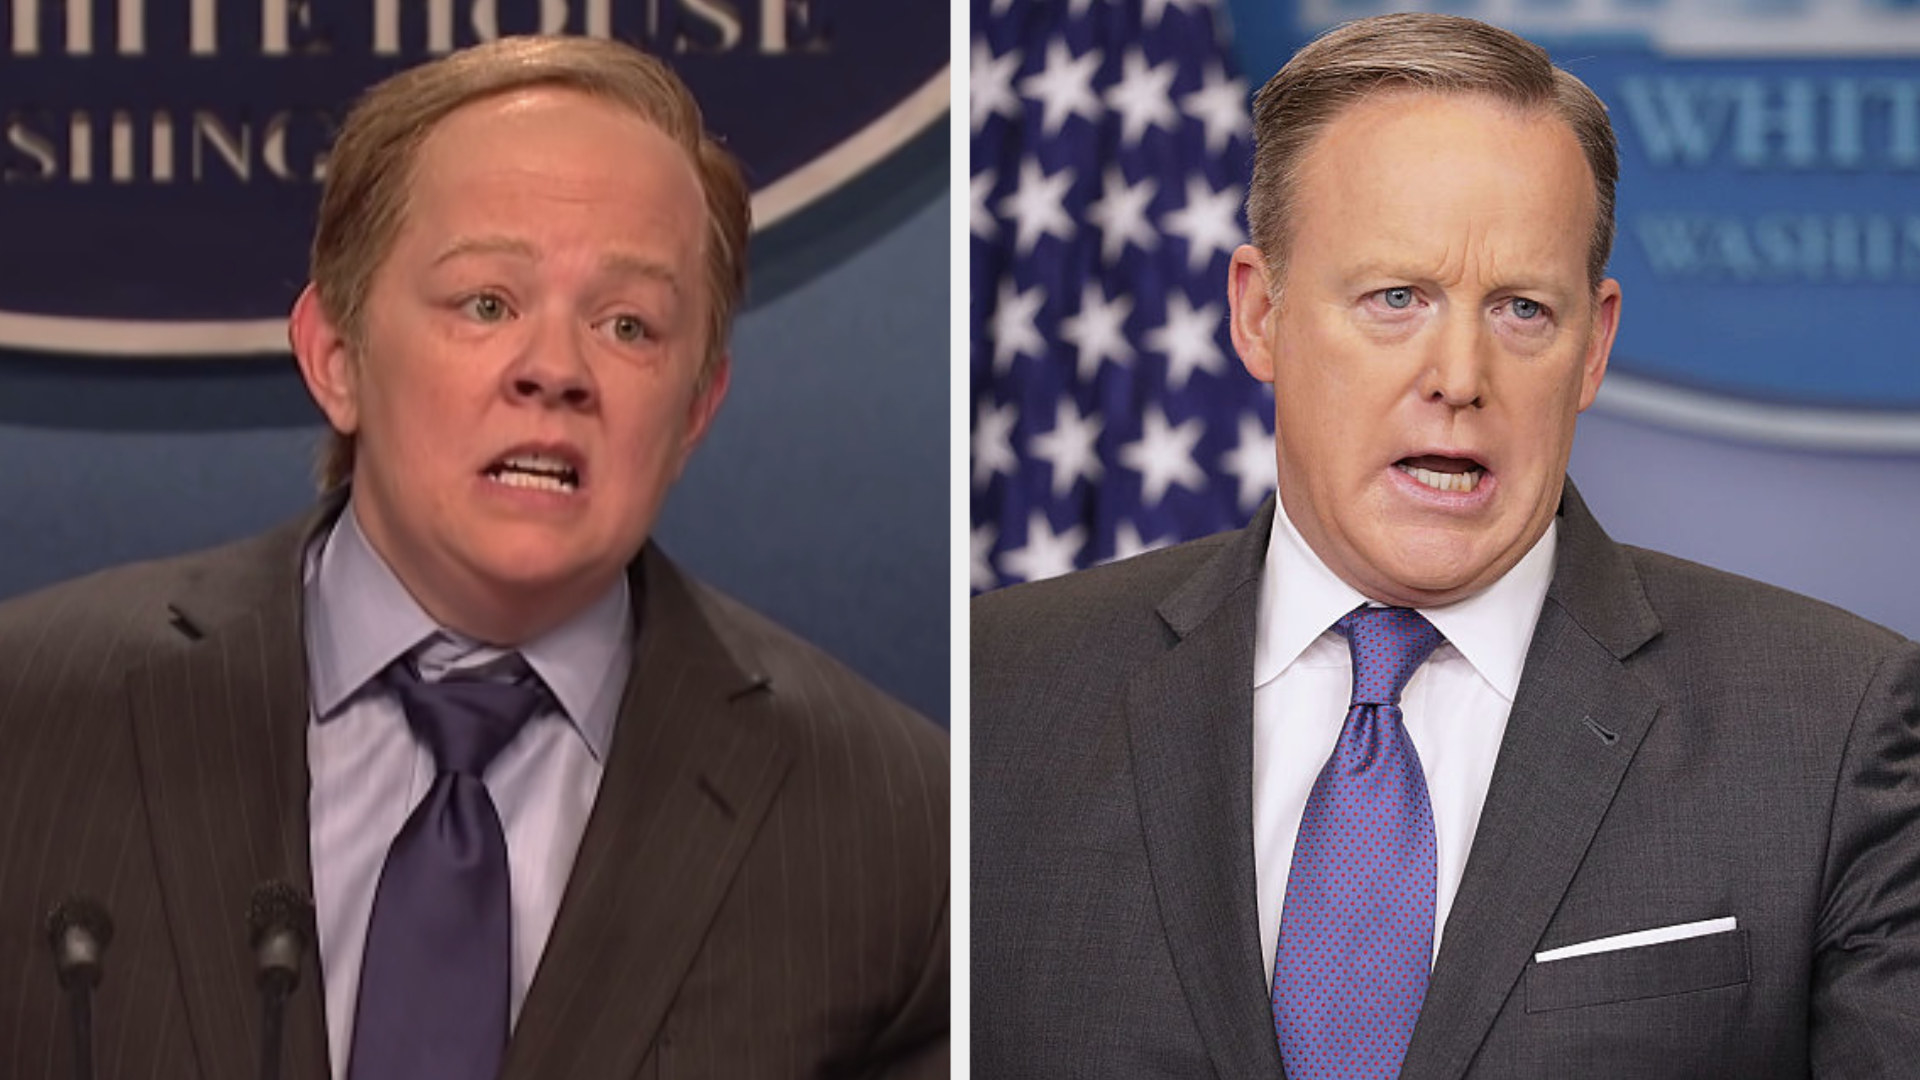 Melissa McCarthy with a receding hairline wearing a suit and blue tie side by side with Sean Spicer in the same outfit